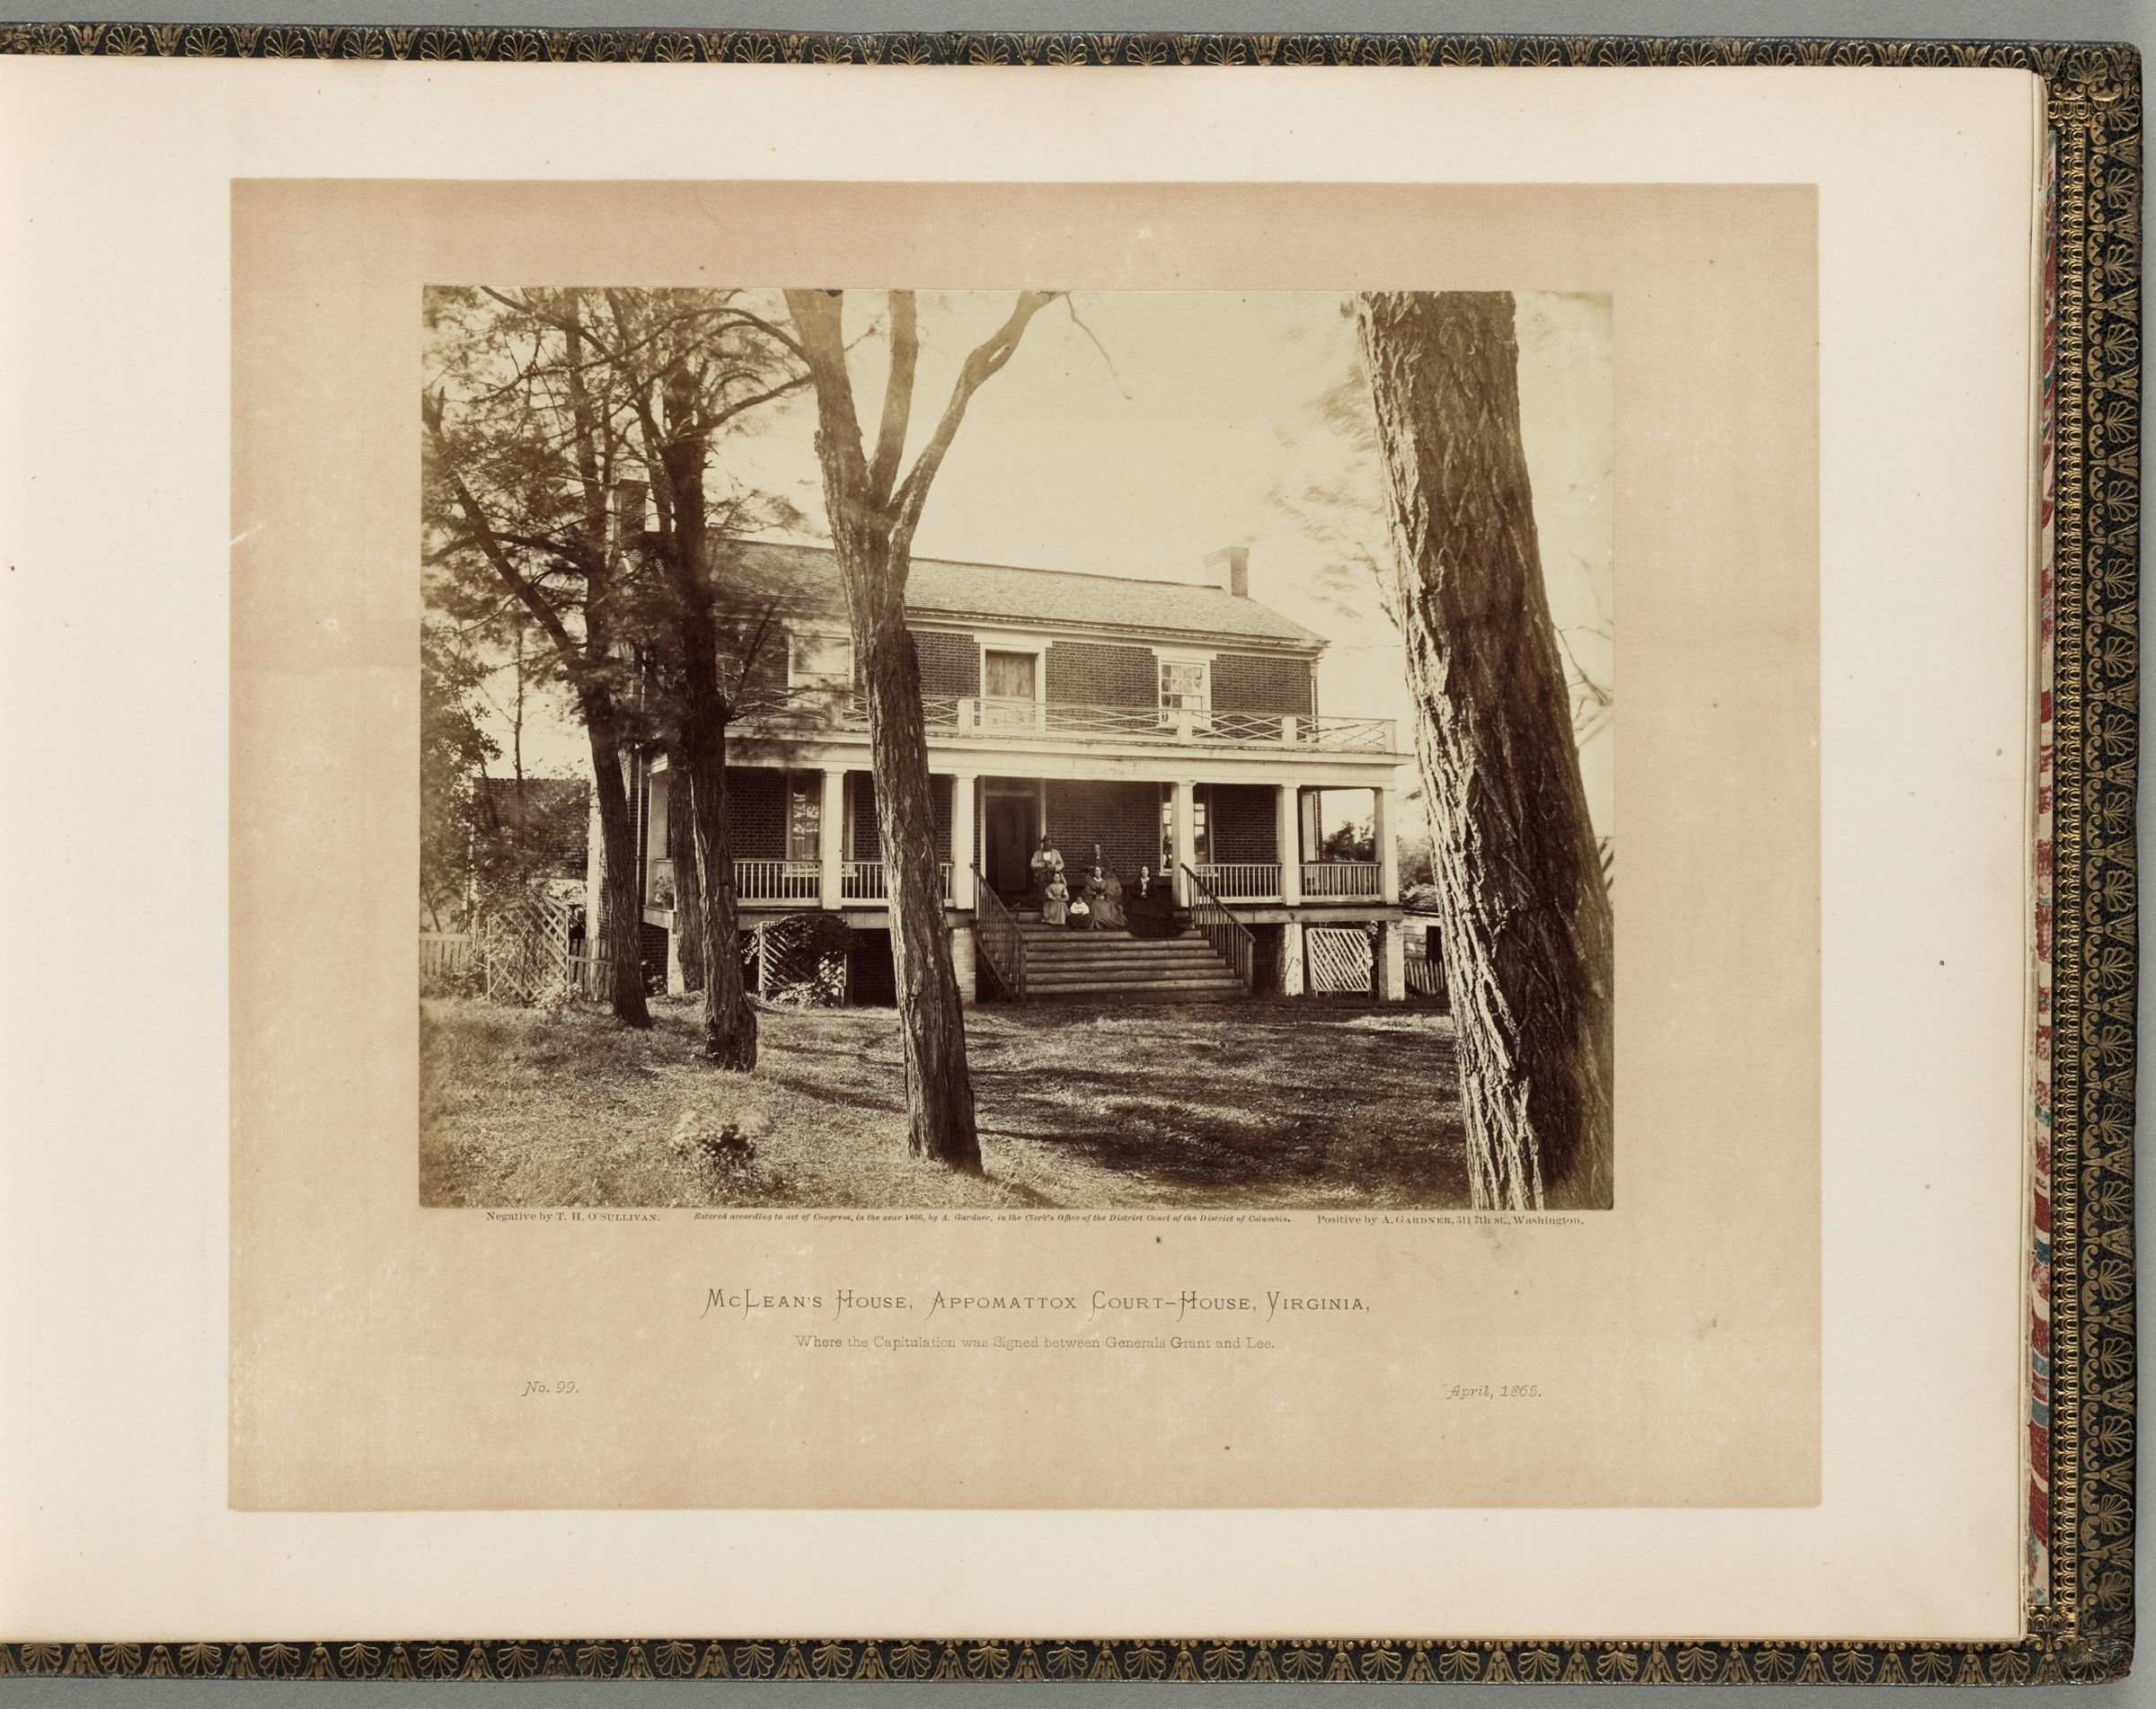 Mclean's House, Appomattox Court-House, Virginia, Where The Capitulation Was Signed Between Generals Grant And Lee